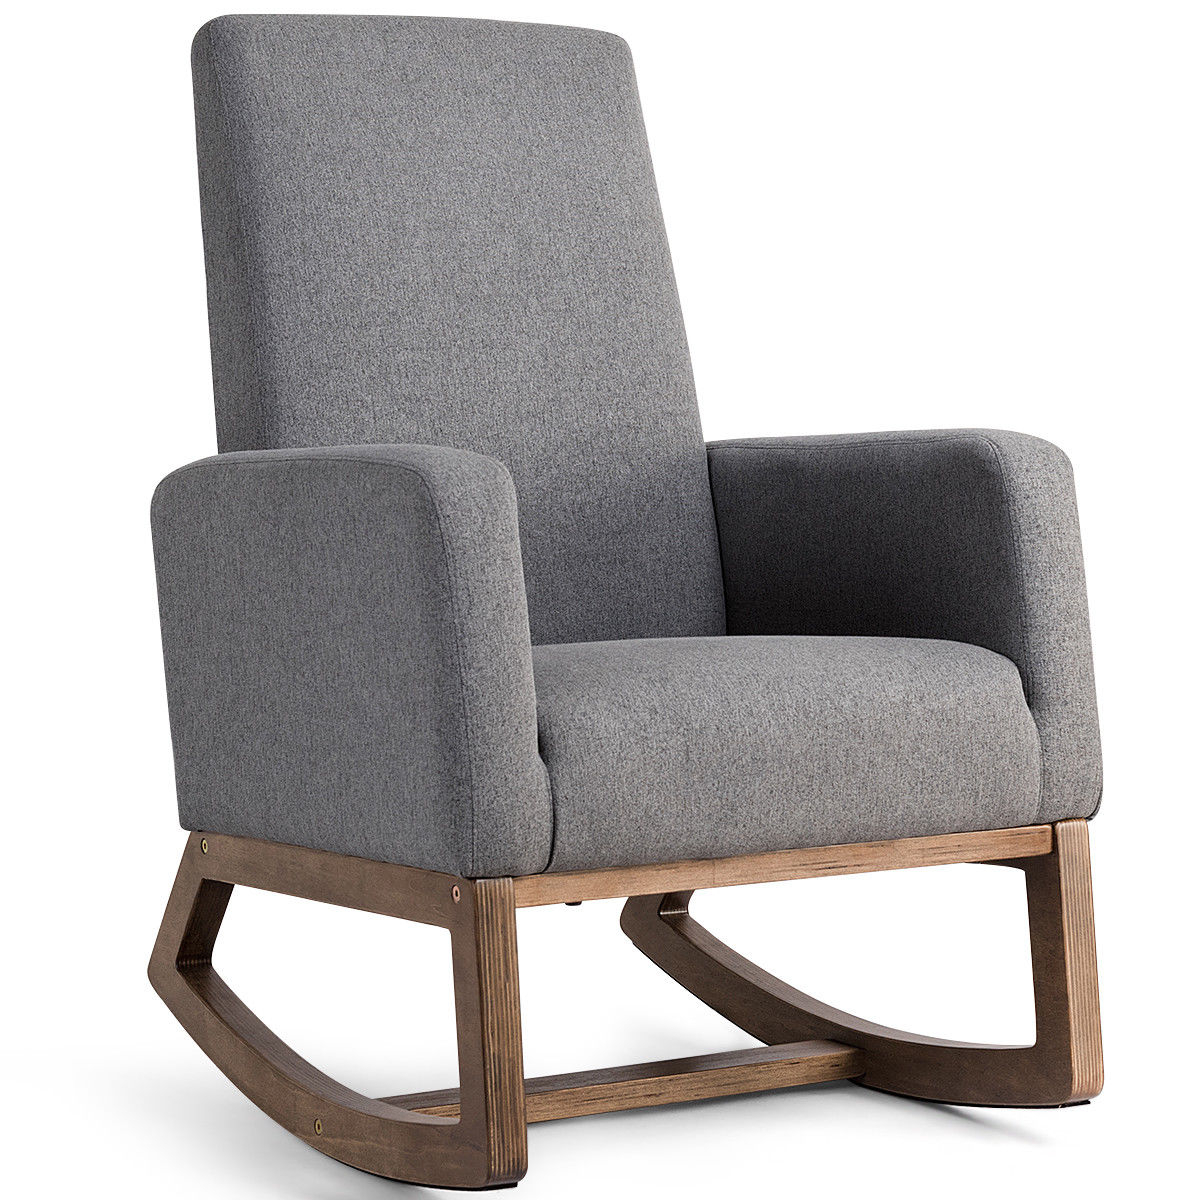 Costway: Costway Mid Century Retro Modern Fabric Upholstered Rocking Chair  Relax Rocker Gray | Rakuten For Mid Century Fabric Rocking Chairs (View 8 of 20)